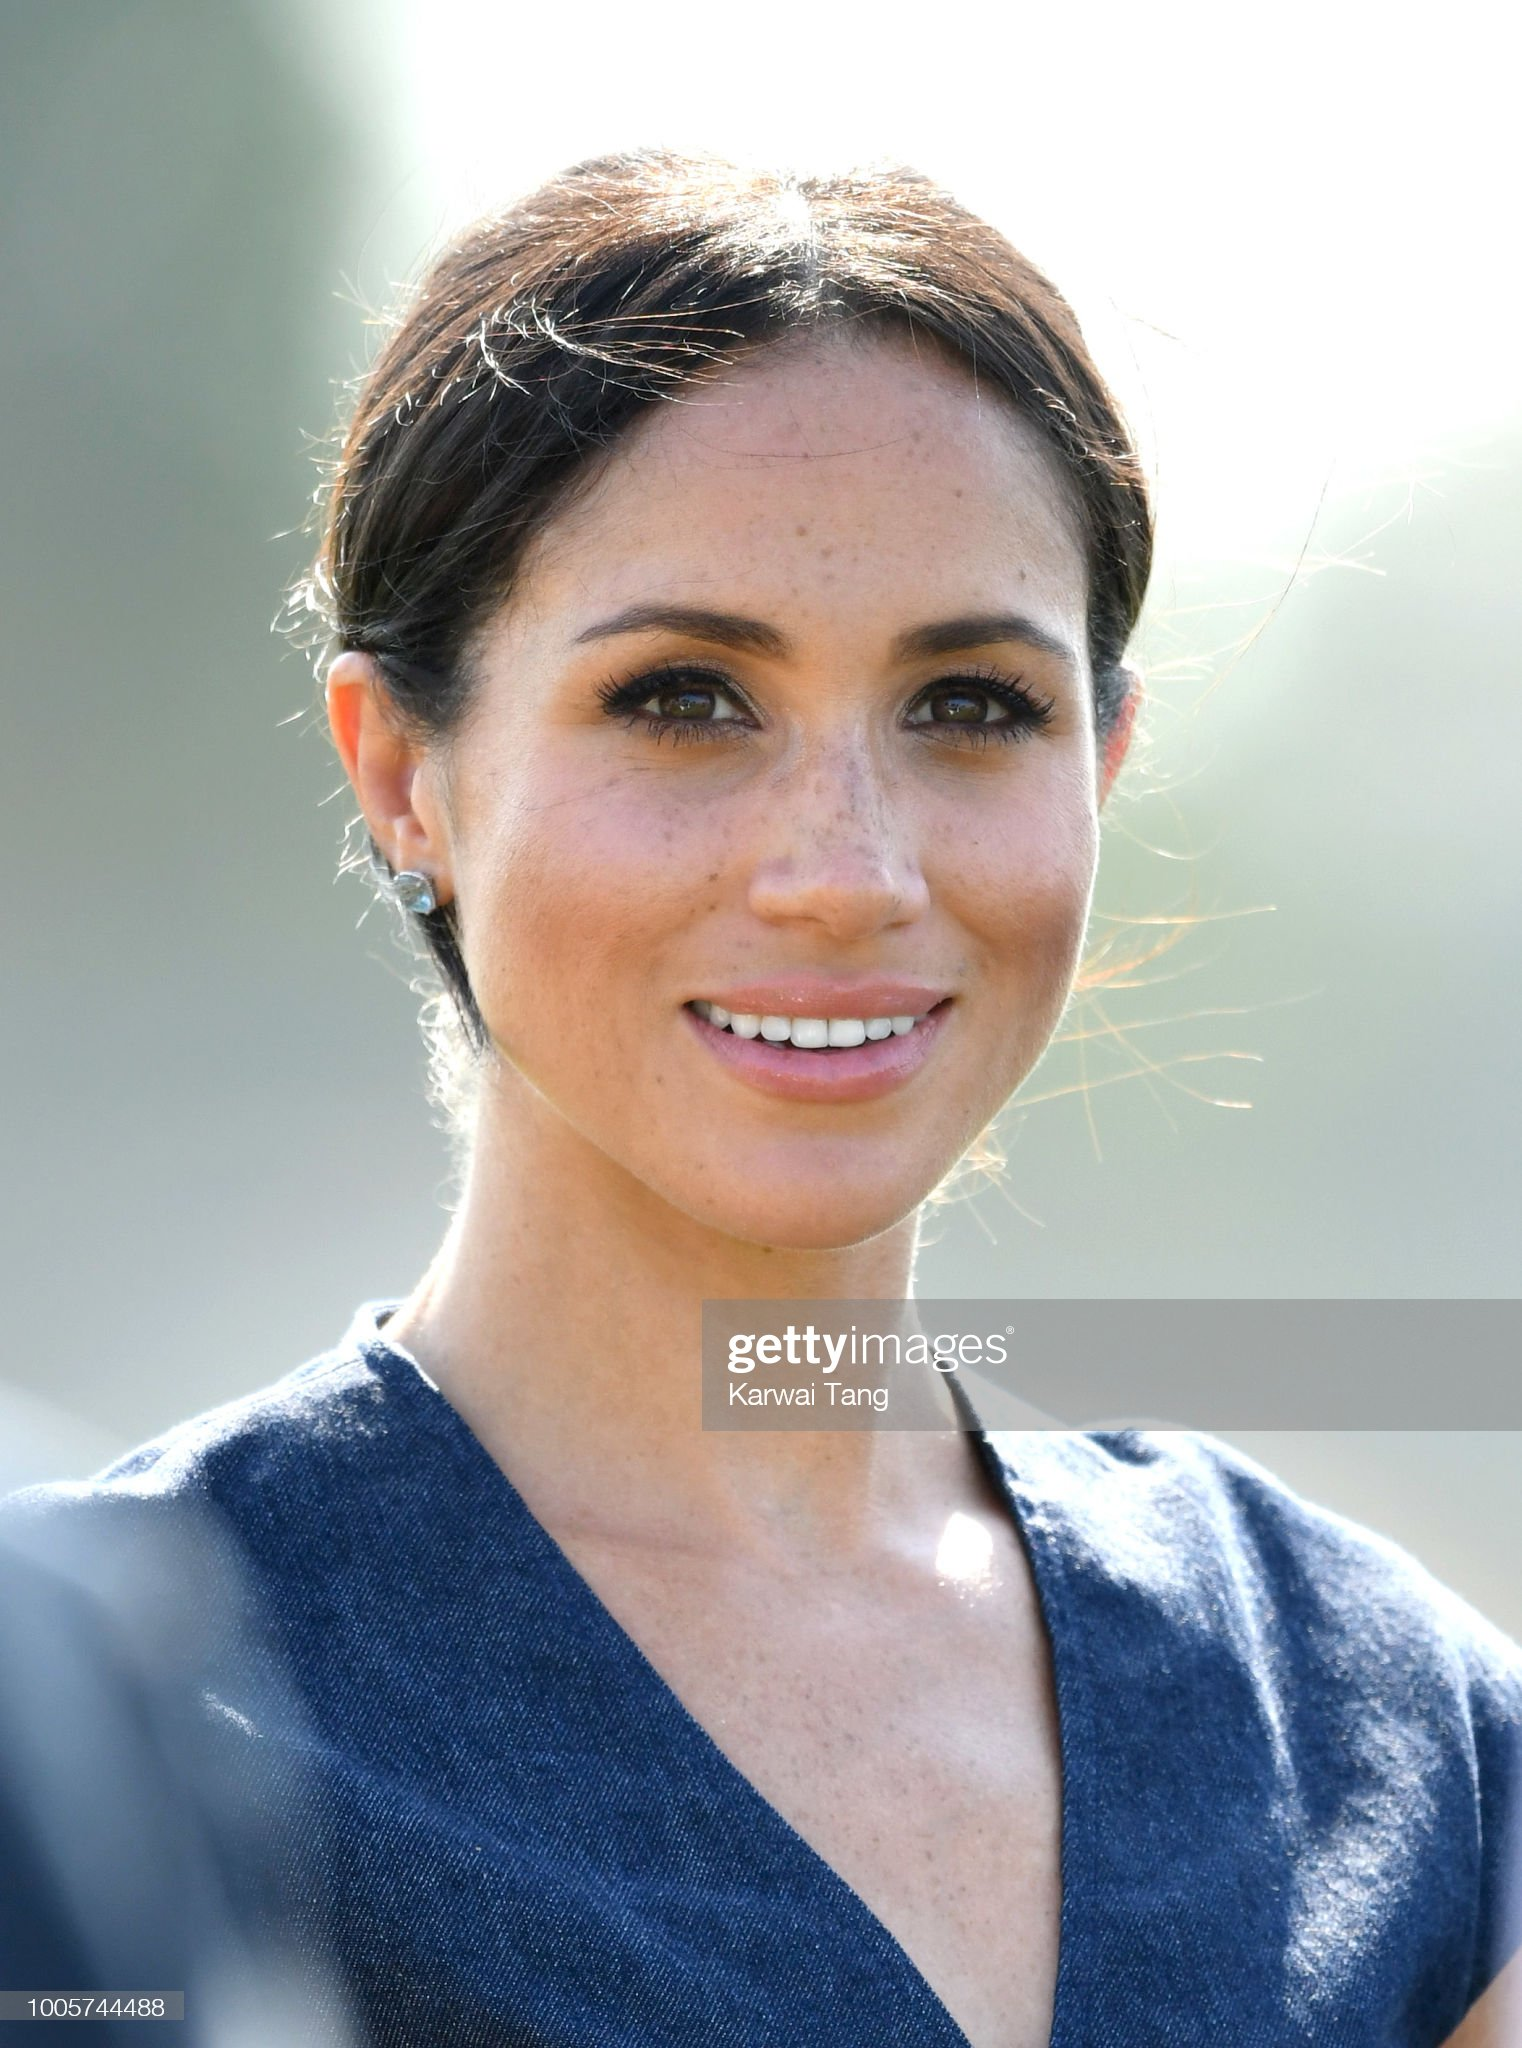 Meghan Markle Meghan-duchess-of-sussex-attends-the-sentebale-isps-handa-polo-cup-at-picture-id1005744488?s=2048x2048